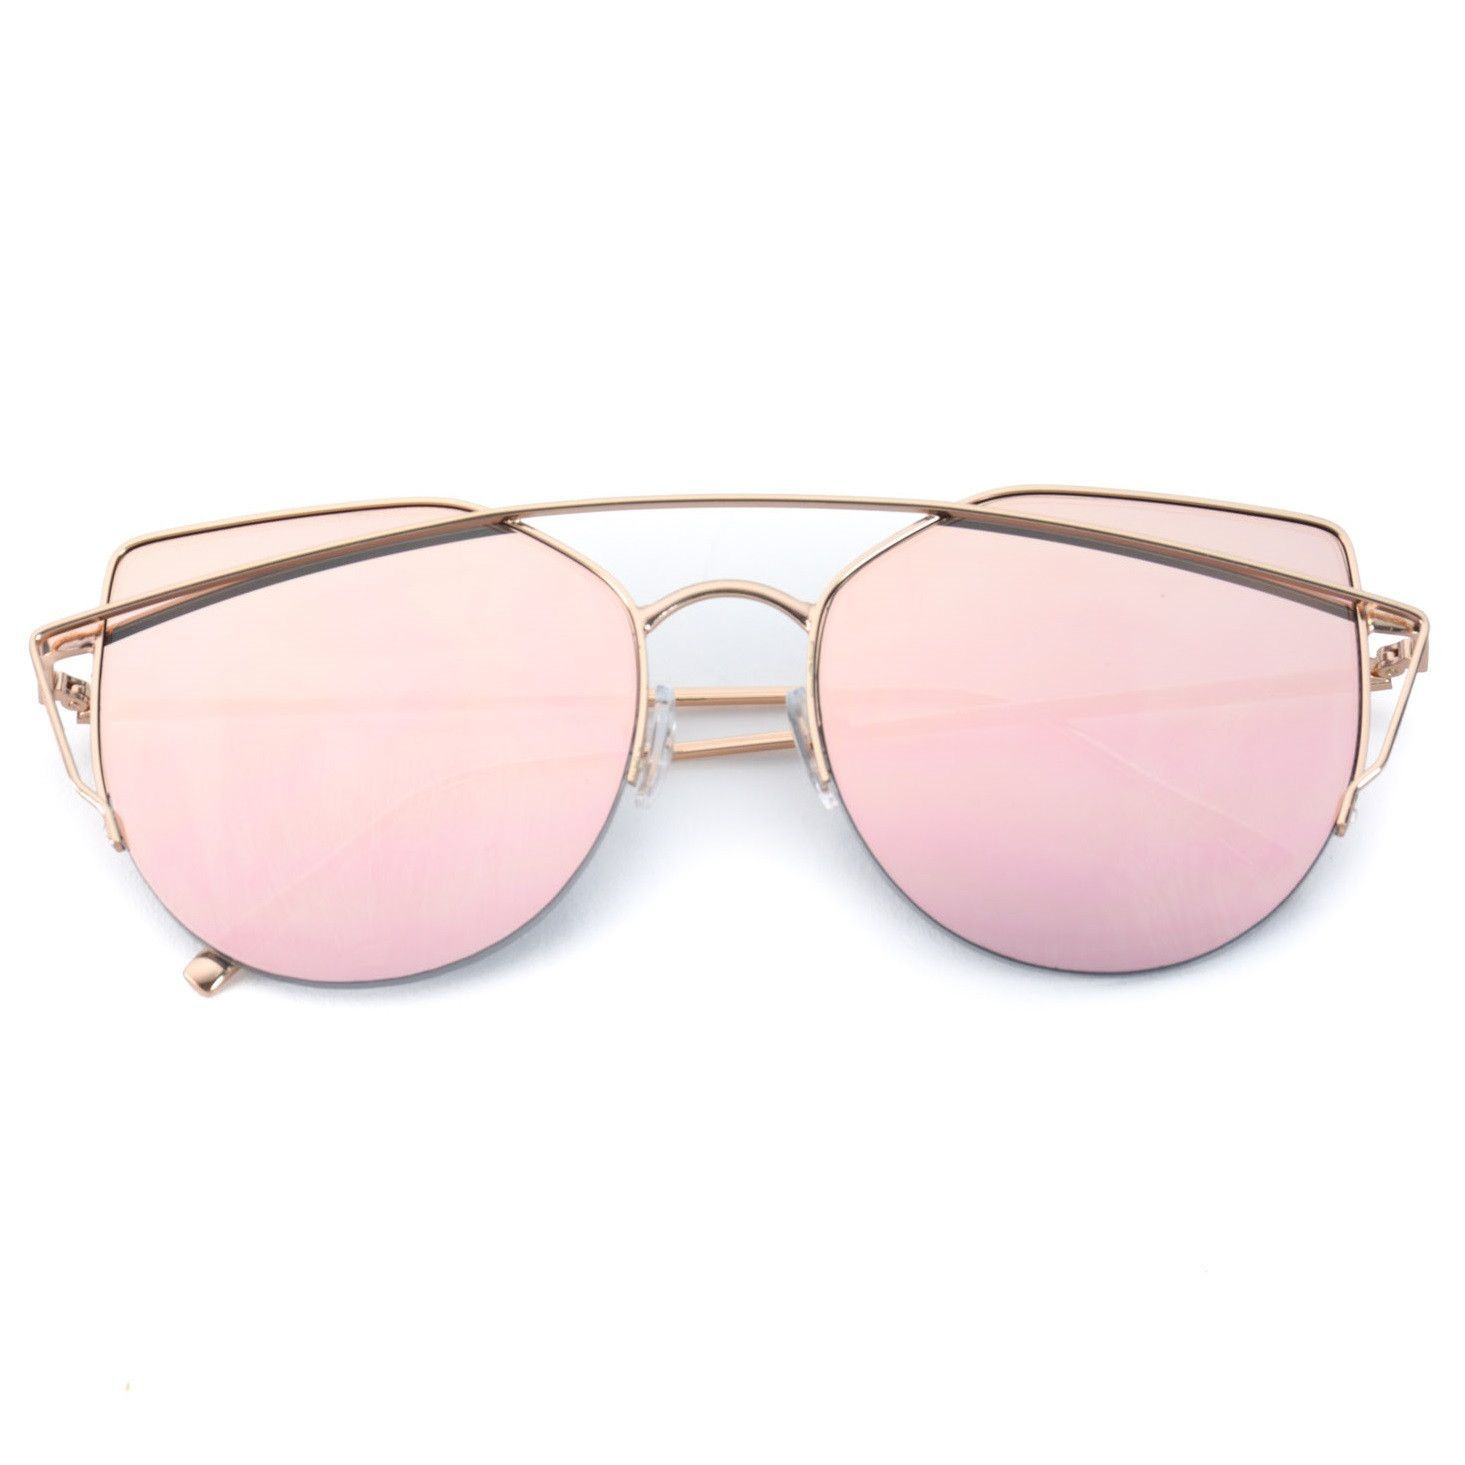 e3ad609897a Semi-rimless style with silver or gold frames. Dimensions  Frame Width  150  mm Lens Width  60 mm Lens Height  55 mm